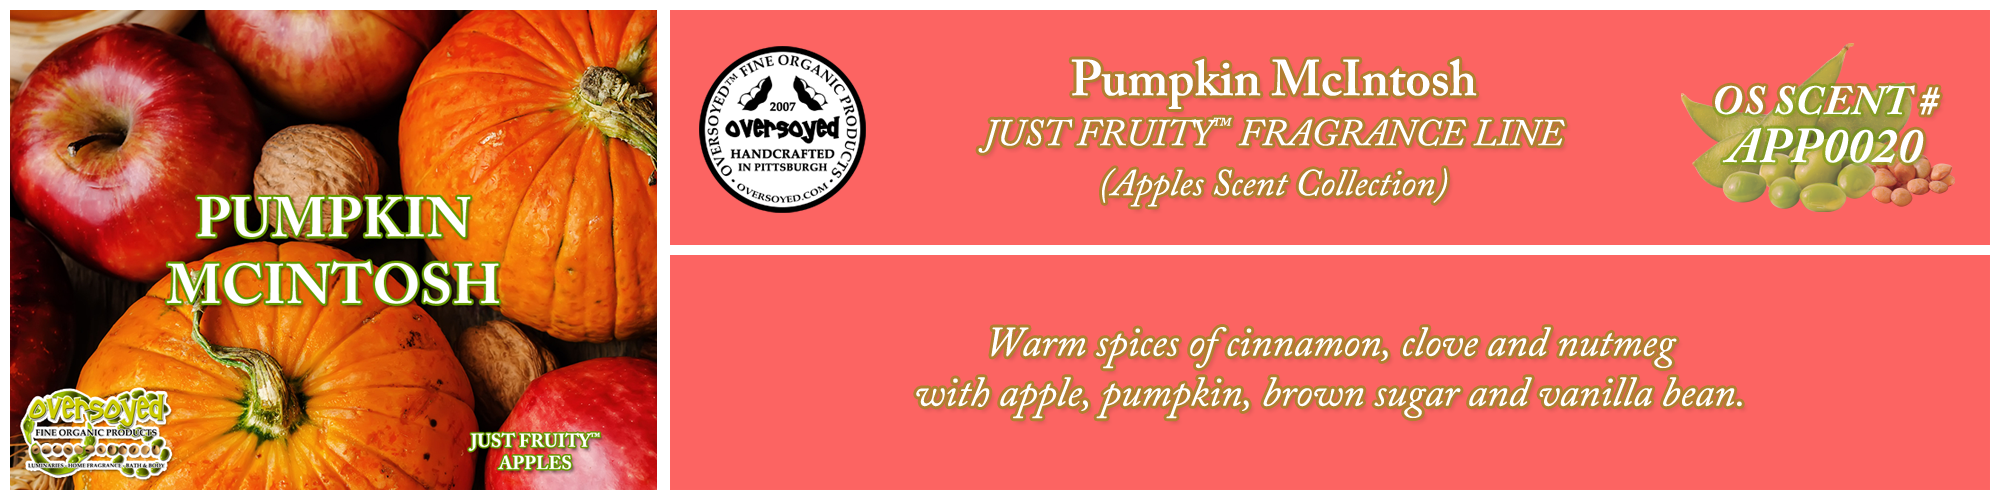 Pumpkin McIntosh Handcrafted Products Collection